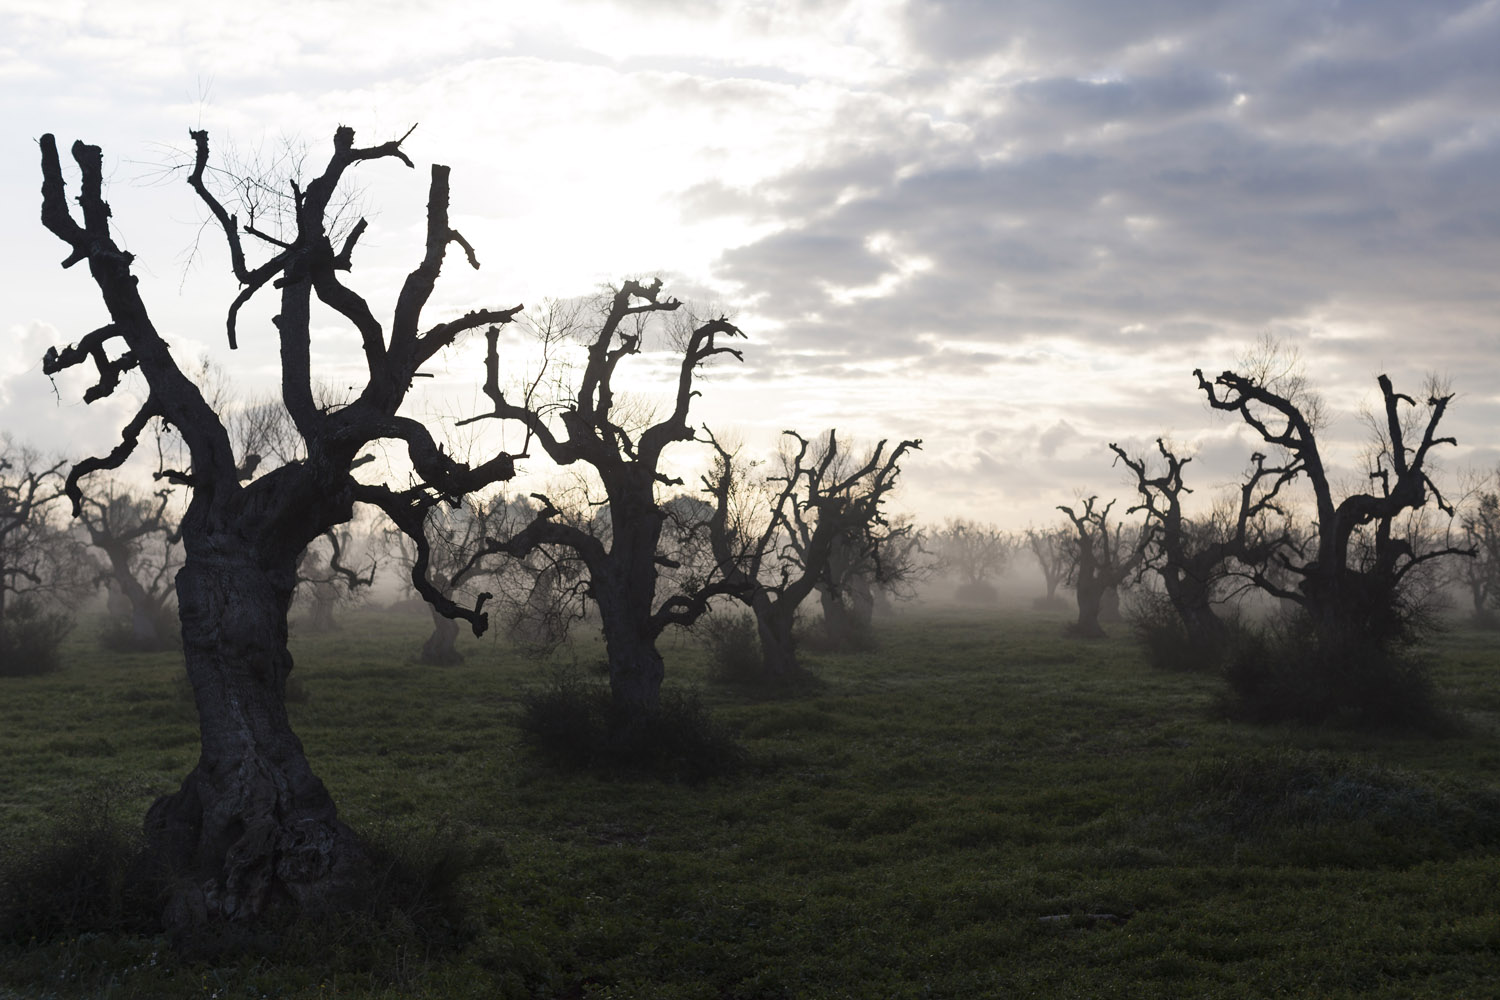 Dead olive trees in the countryside of Ugento, in Salento. Entire swathes of the region now look like an eerie cemetery of desiccated trees, some of which had stood for centuries if not thousands of years. (2017)